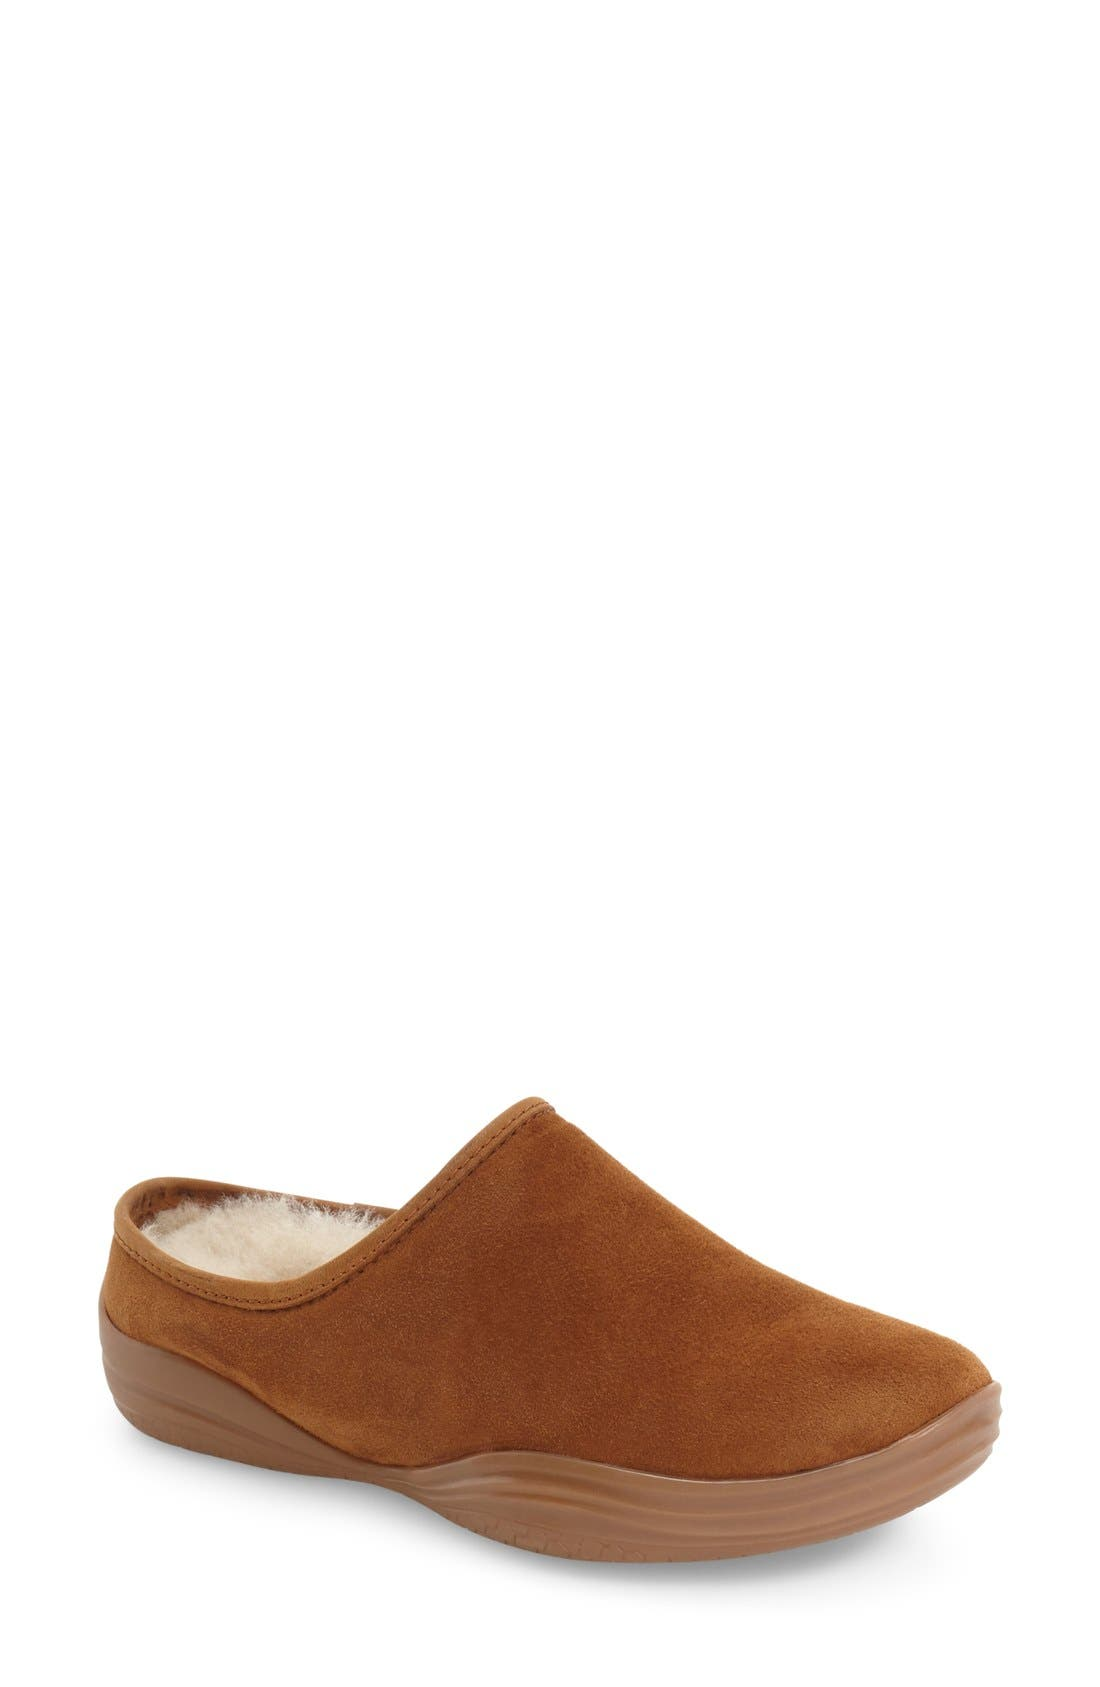 'Stamford' Genuine Shearling Clog Slipper,                         Main,                         color, BEIGE/ BROWN LEATHER